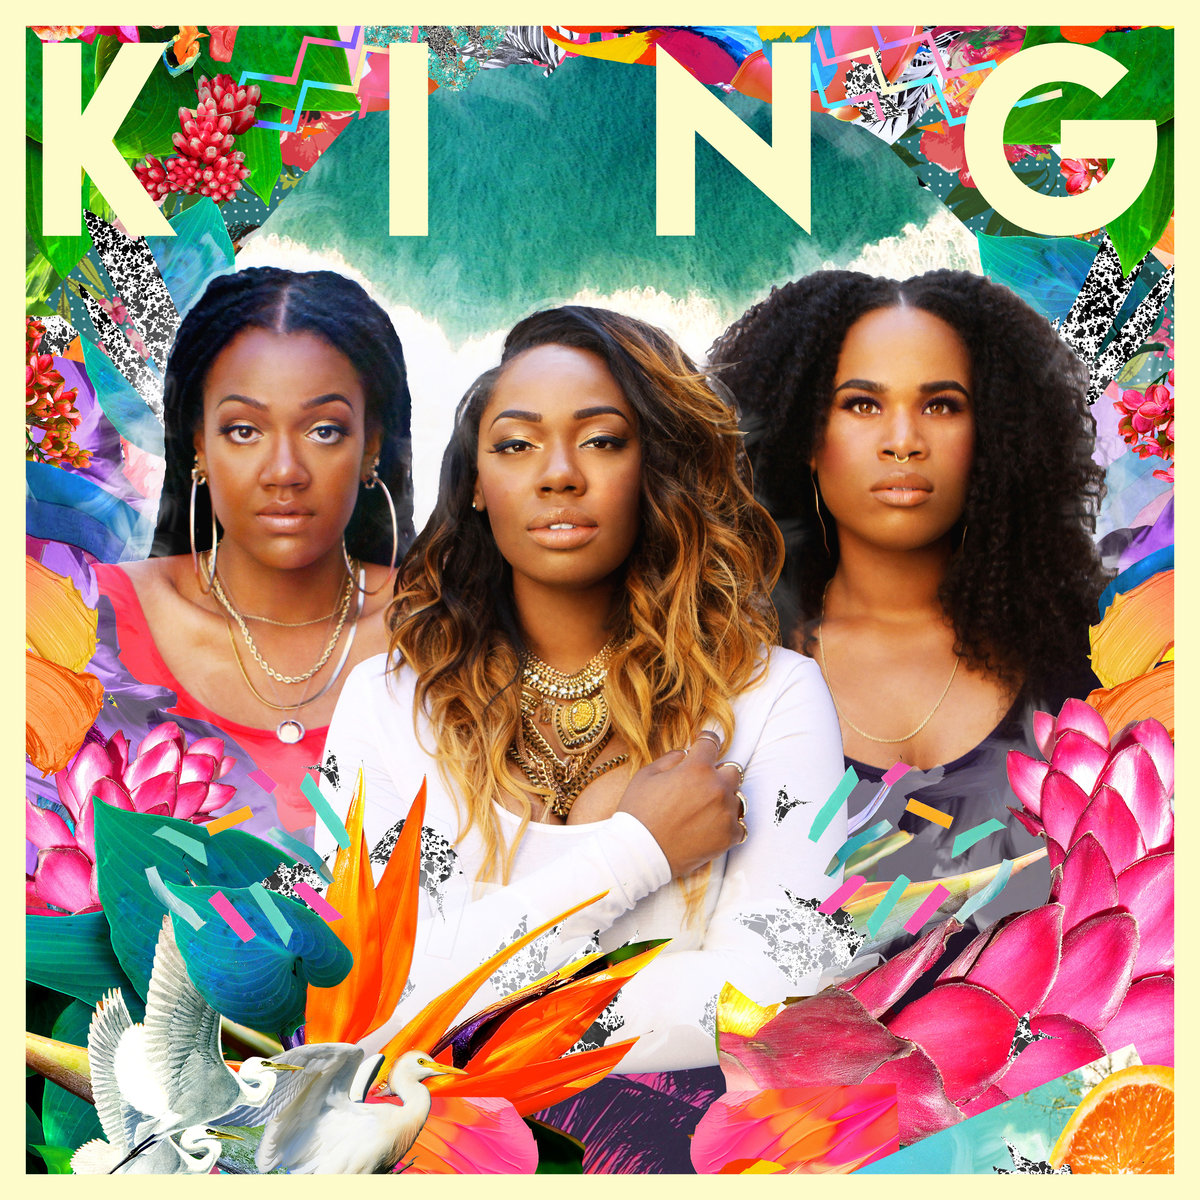 KingWeAreKing